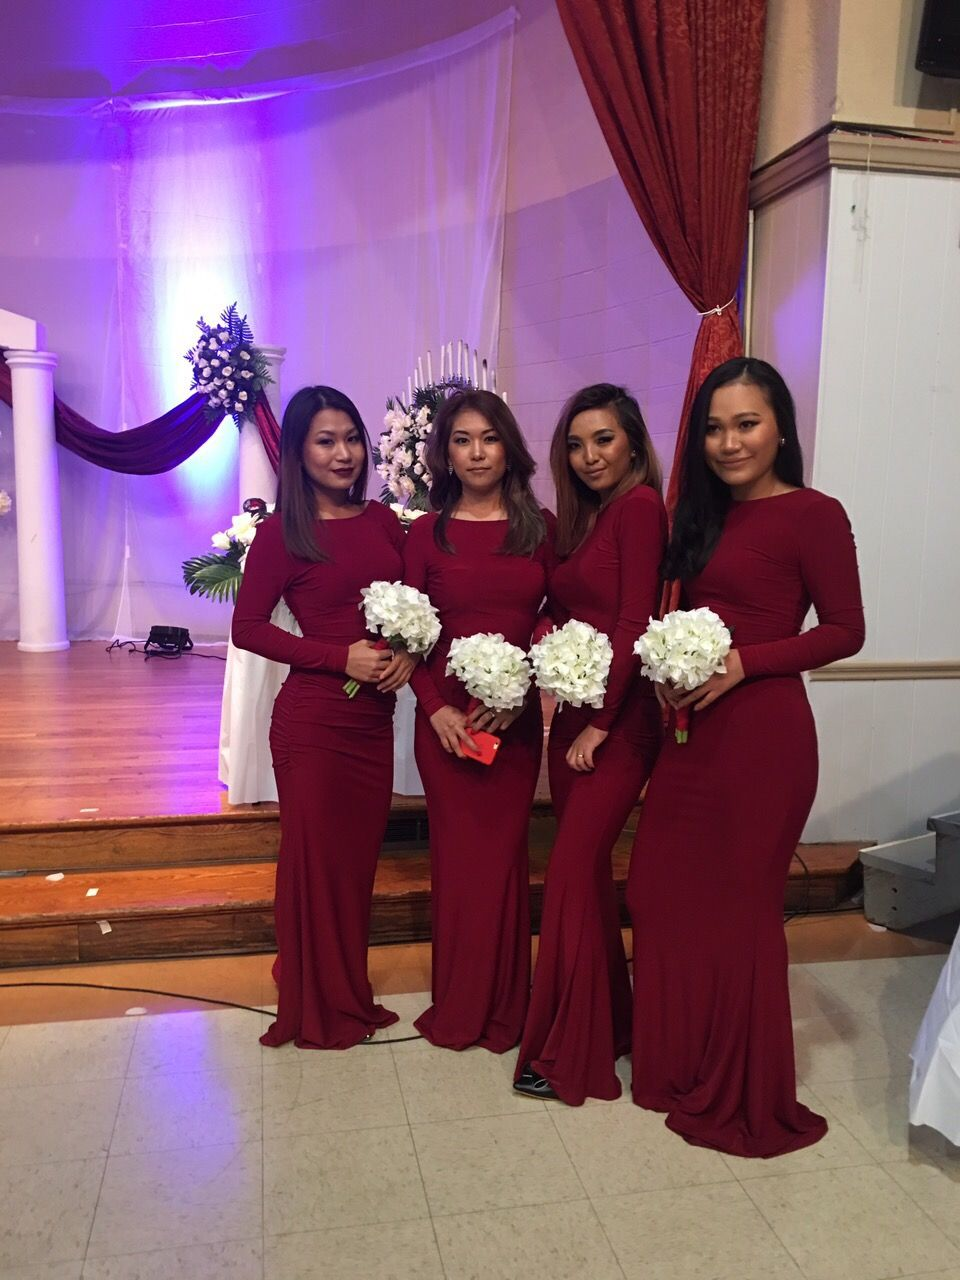 Long Sleeve Maroon Bridesmaids Dresses